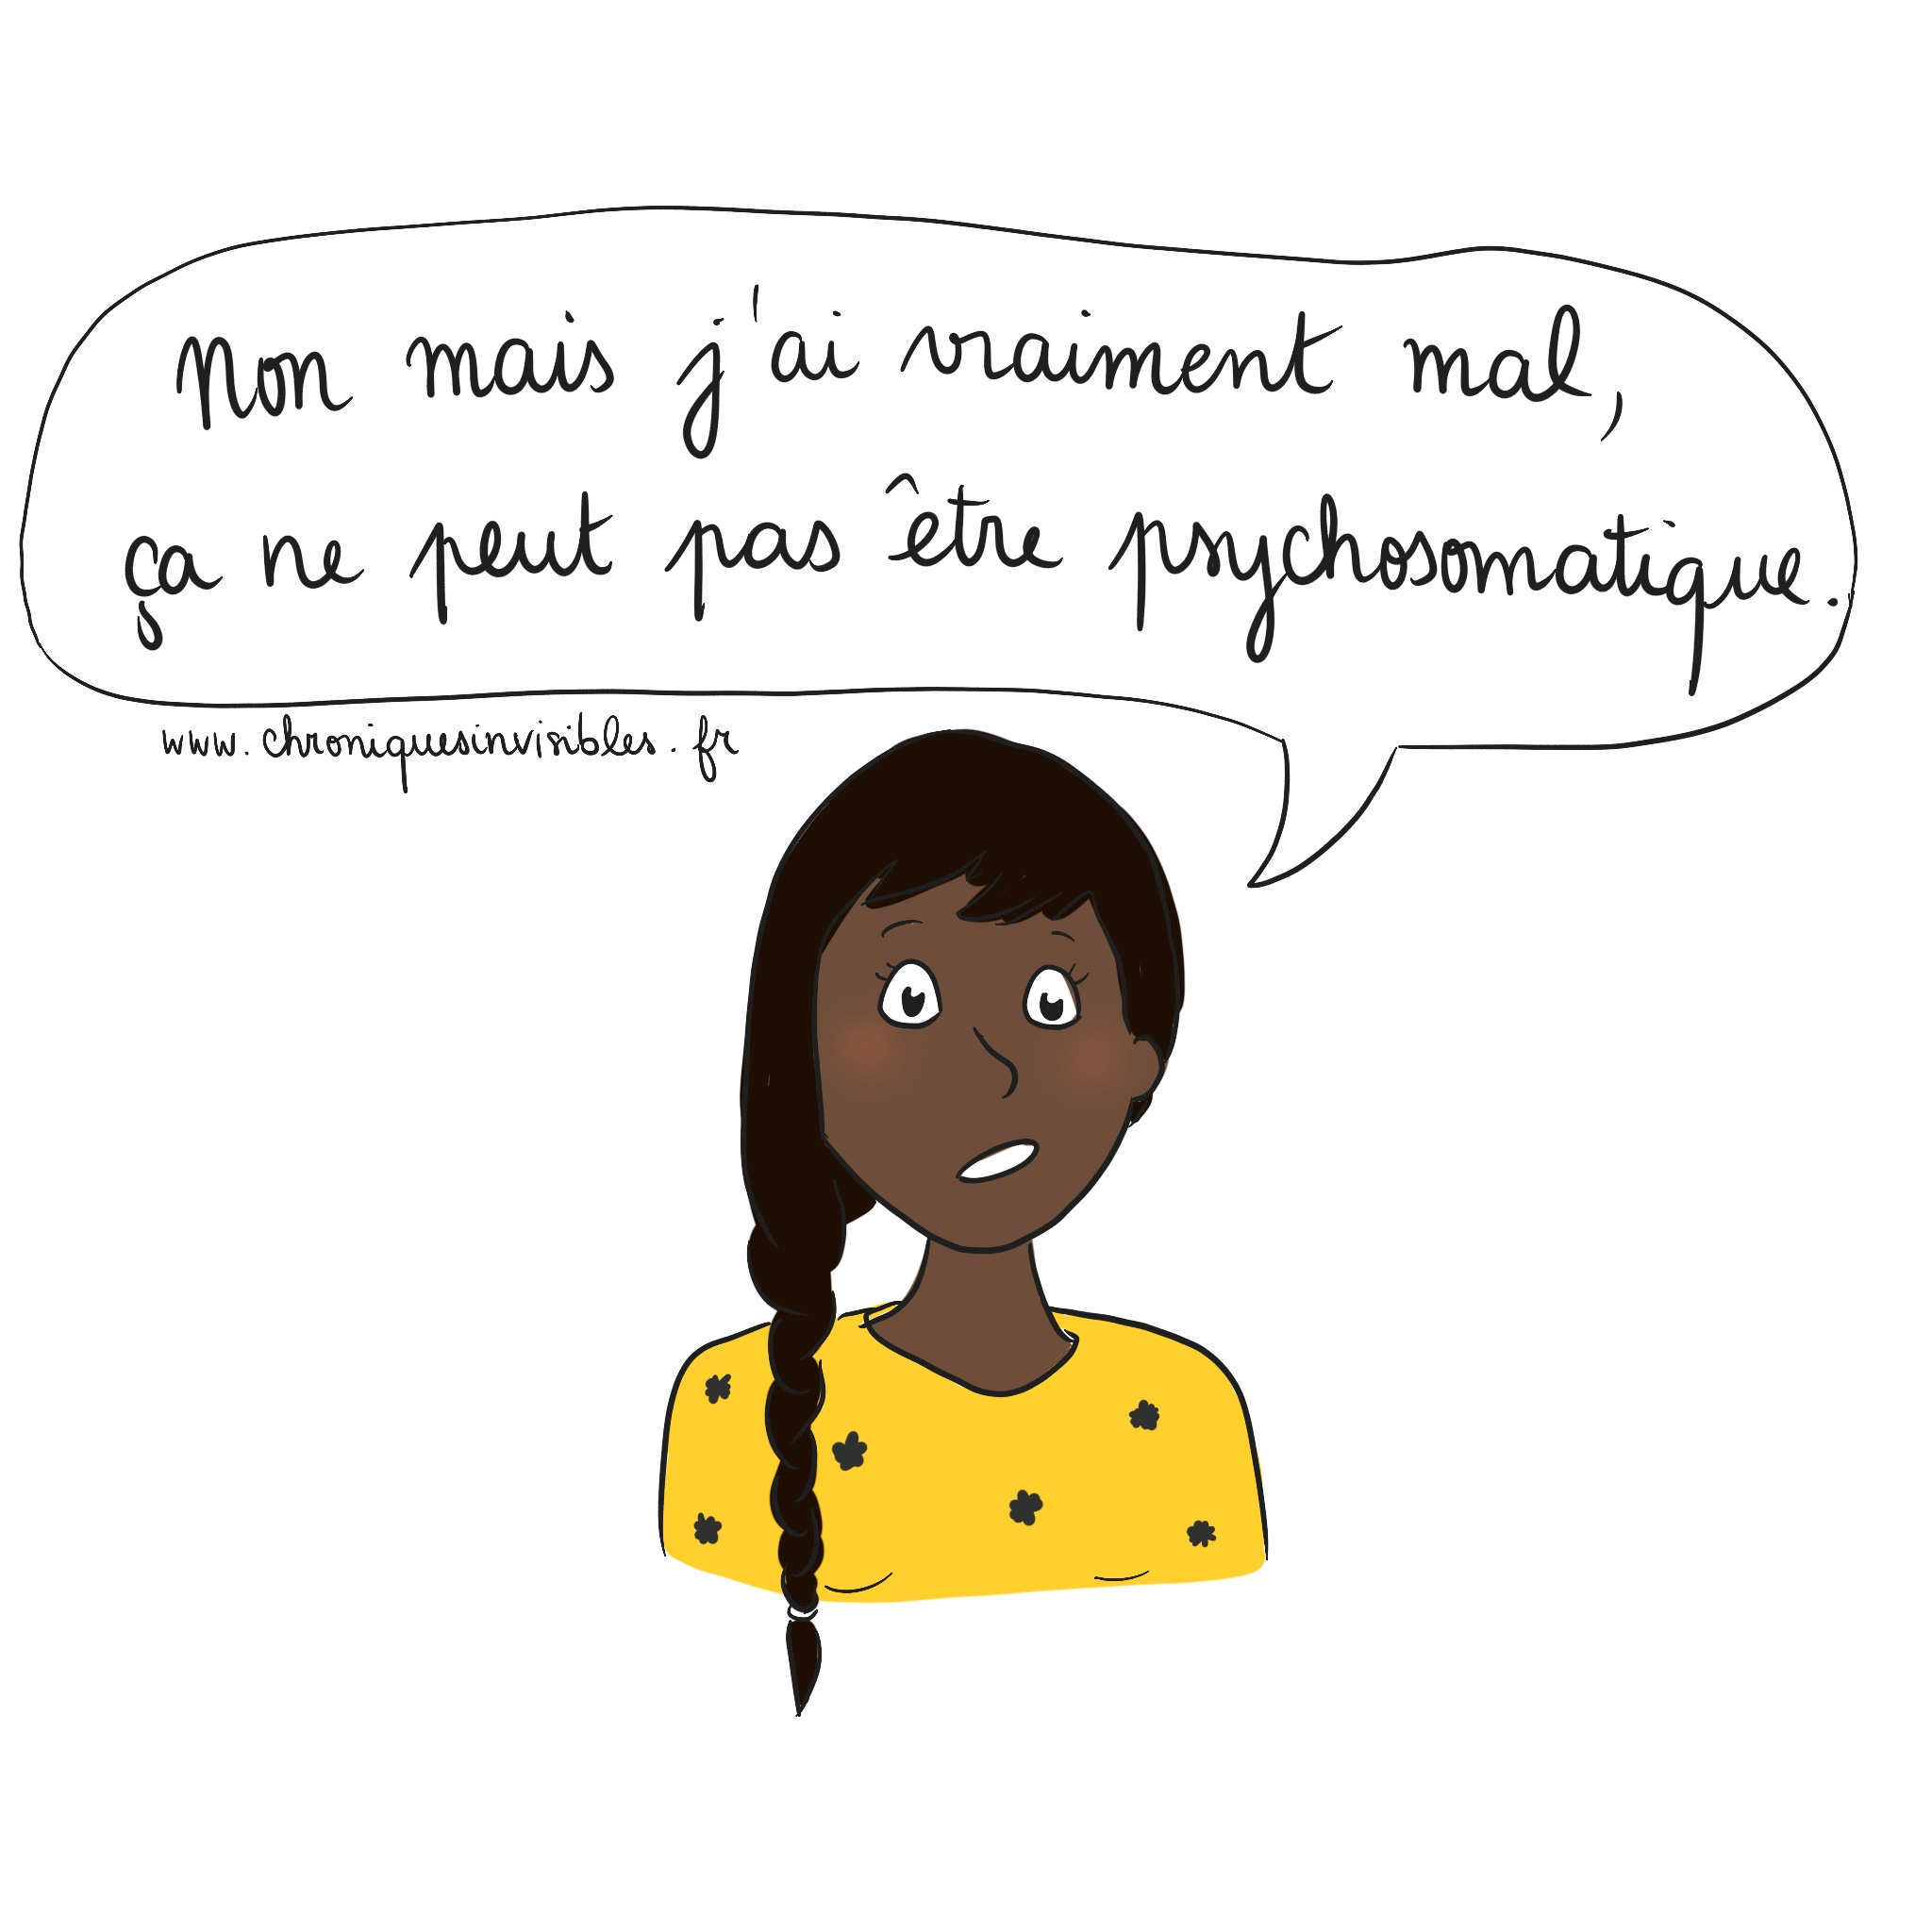 Le diagnostic de maladie psychosomatique.